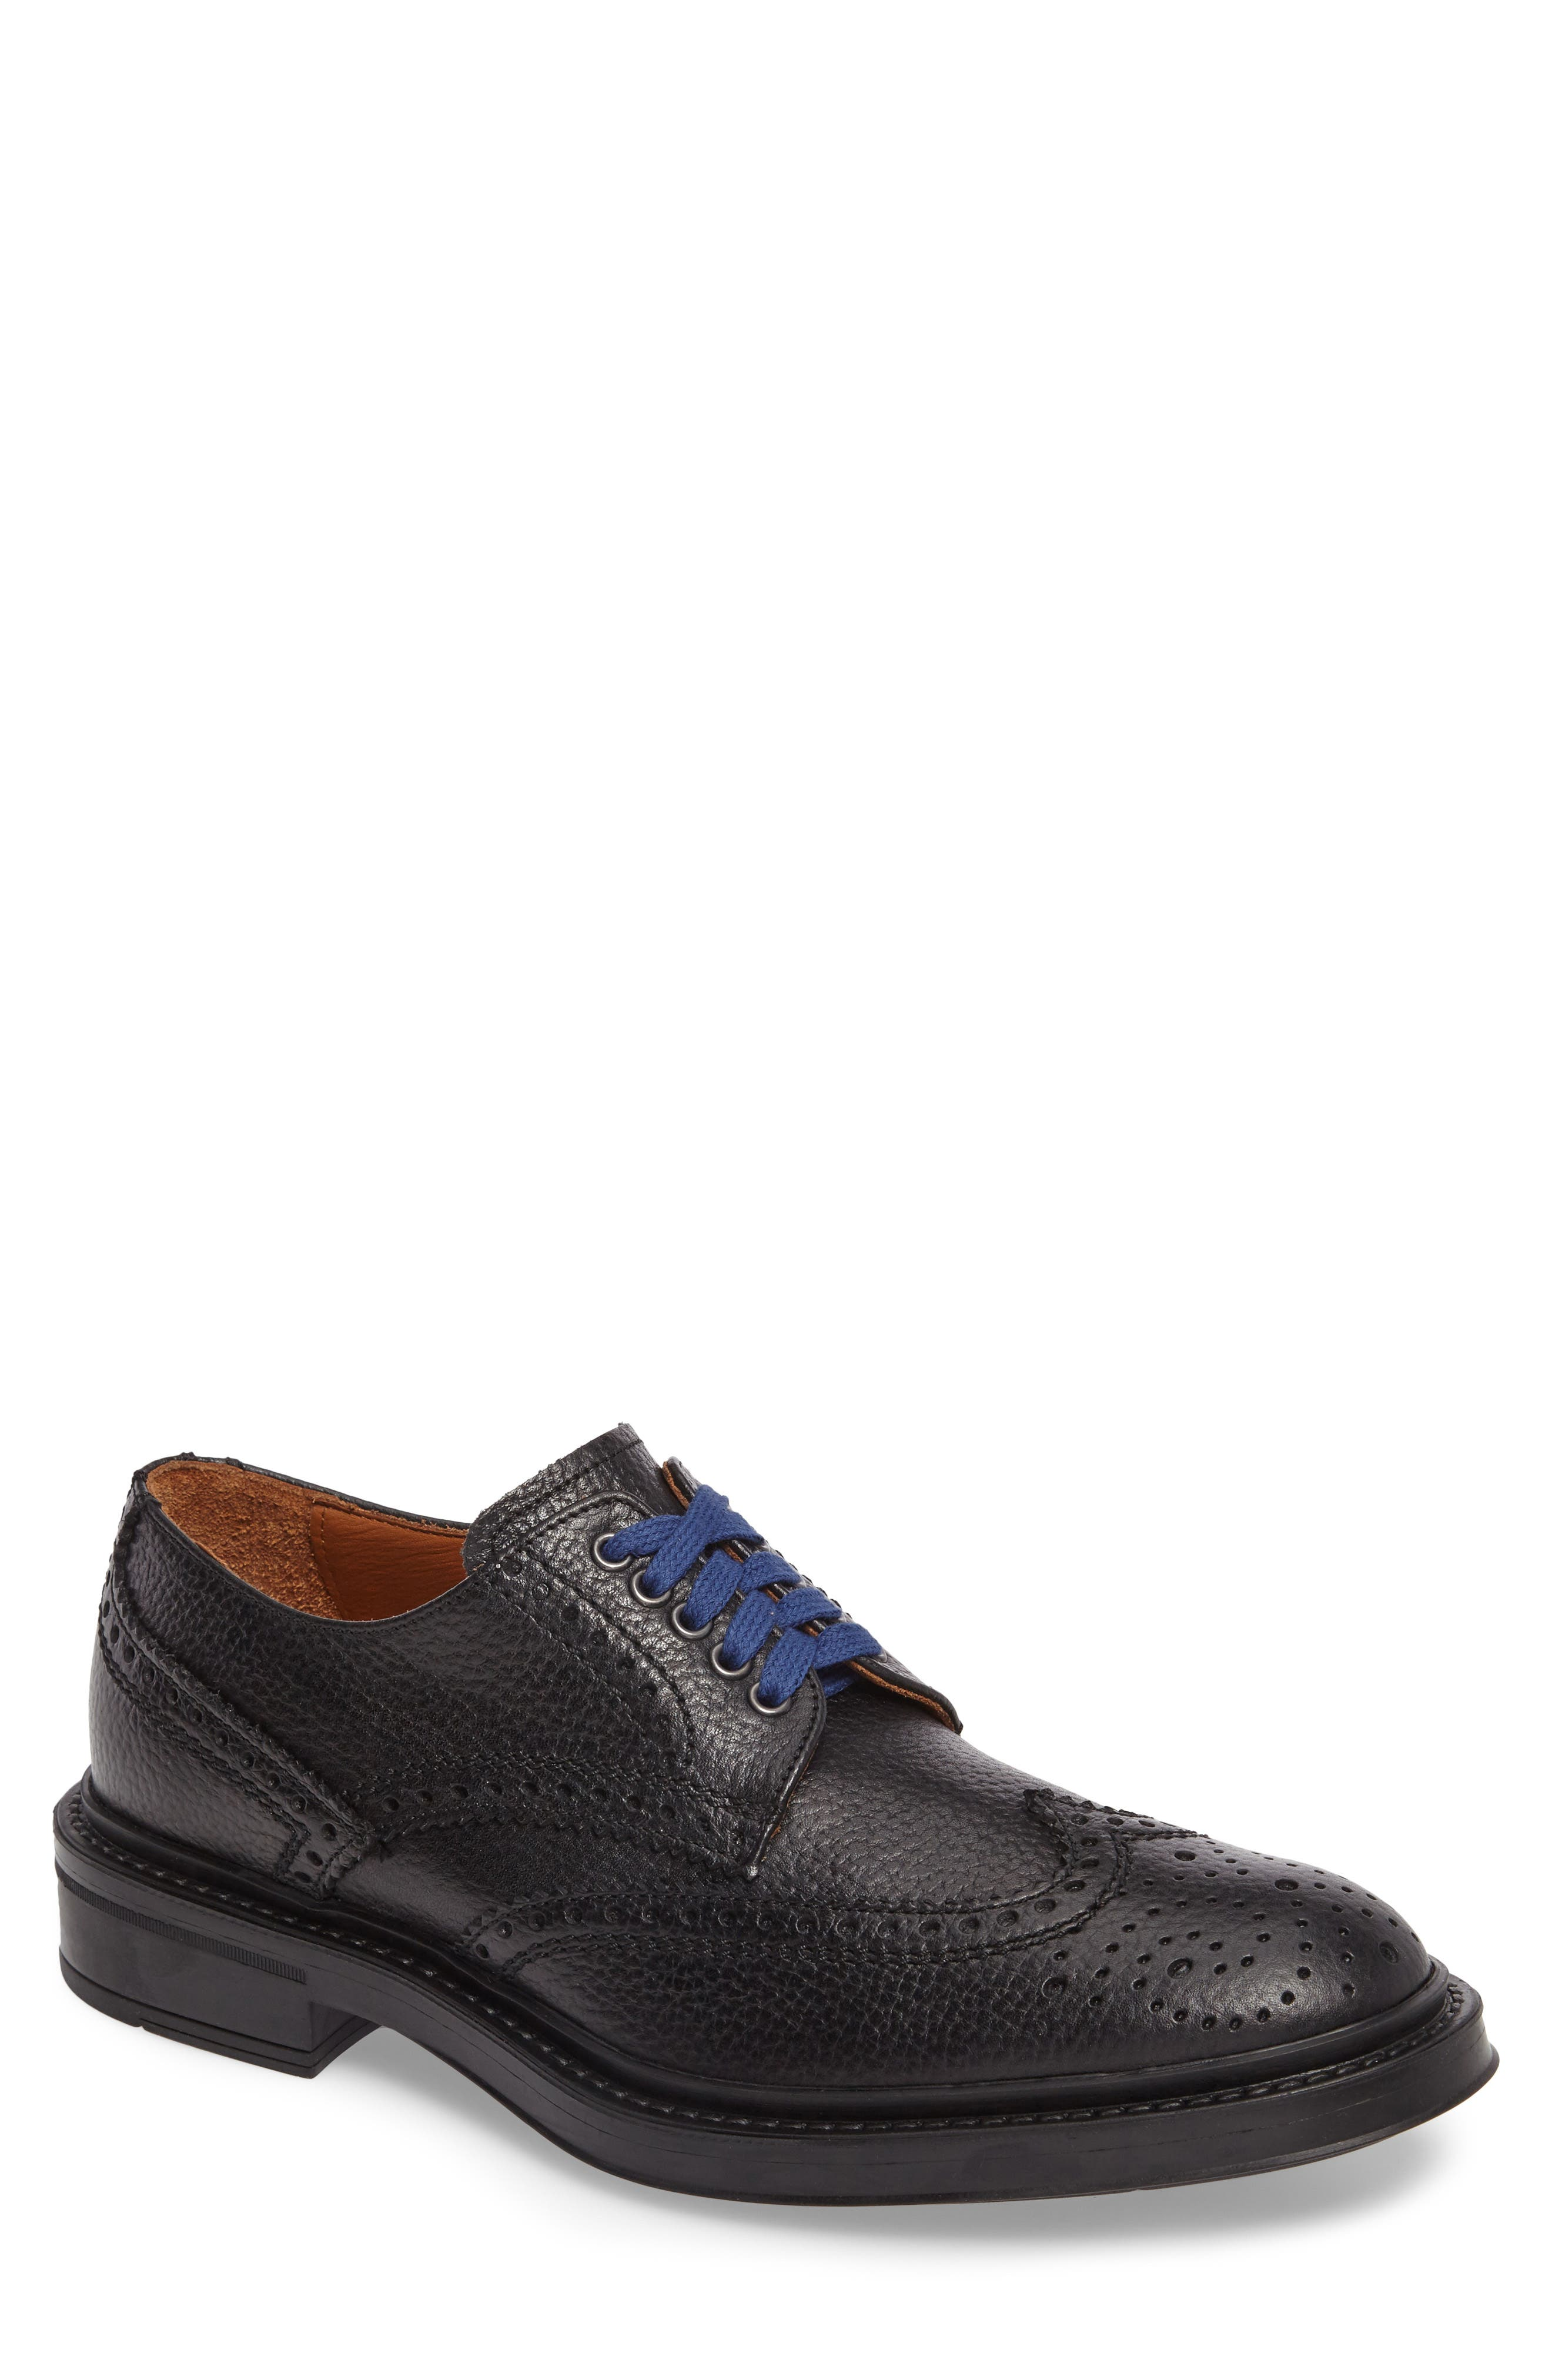 Landon Weatherproof Wingtip,                             Main thumbnail 1, color,                             Black